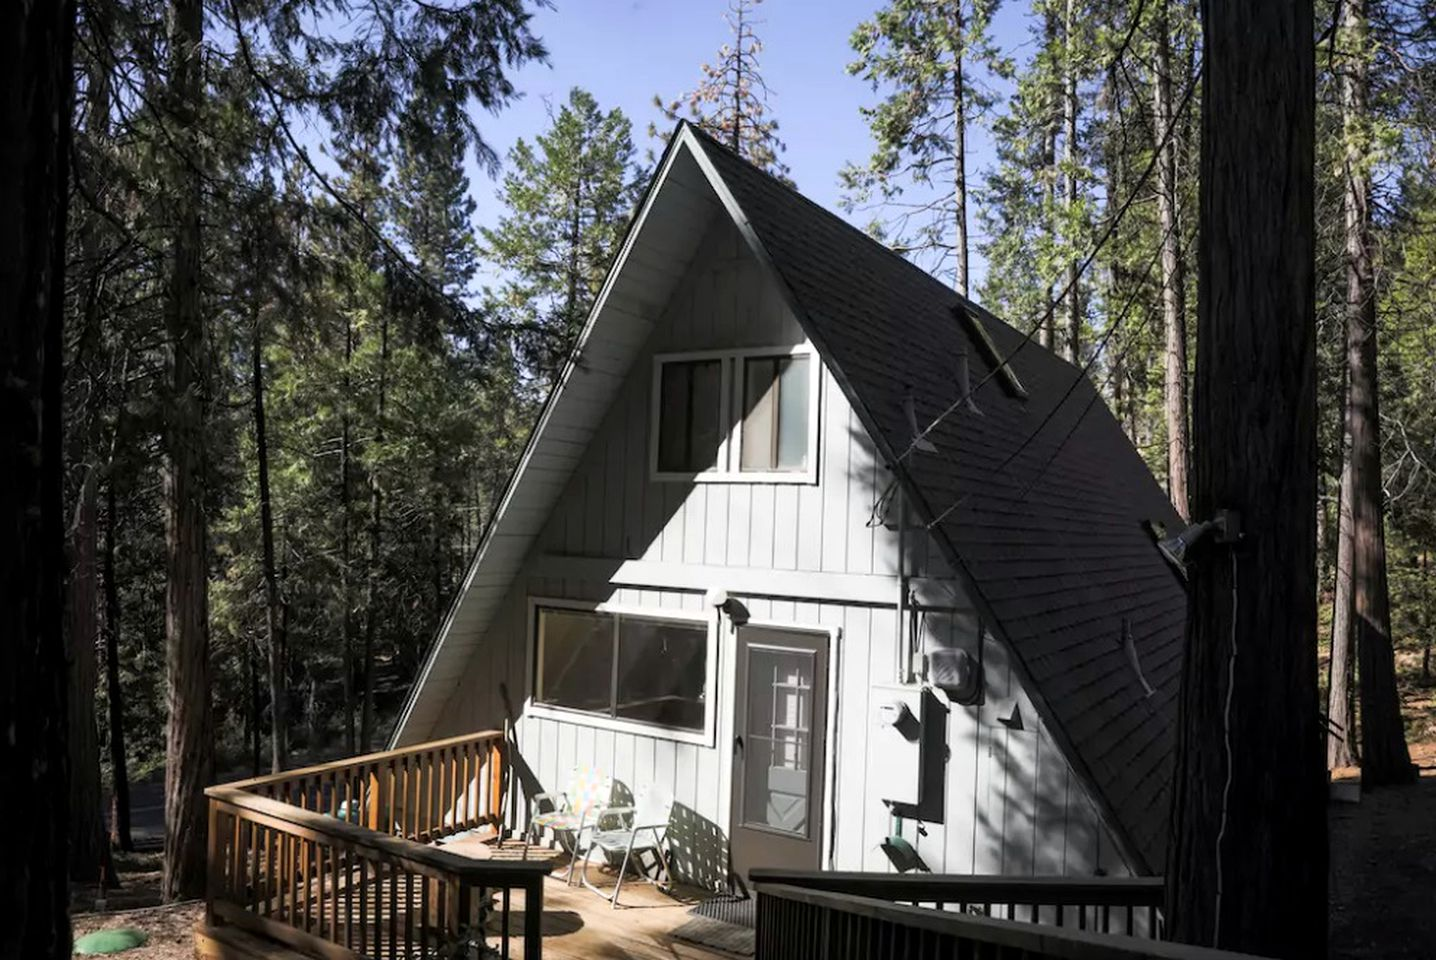 A-frame cabin rental among trees in Northern California